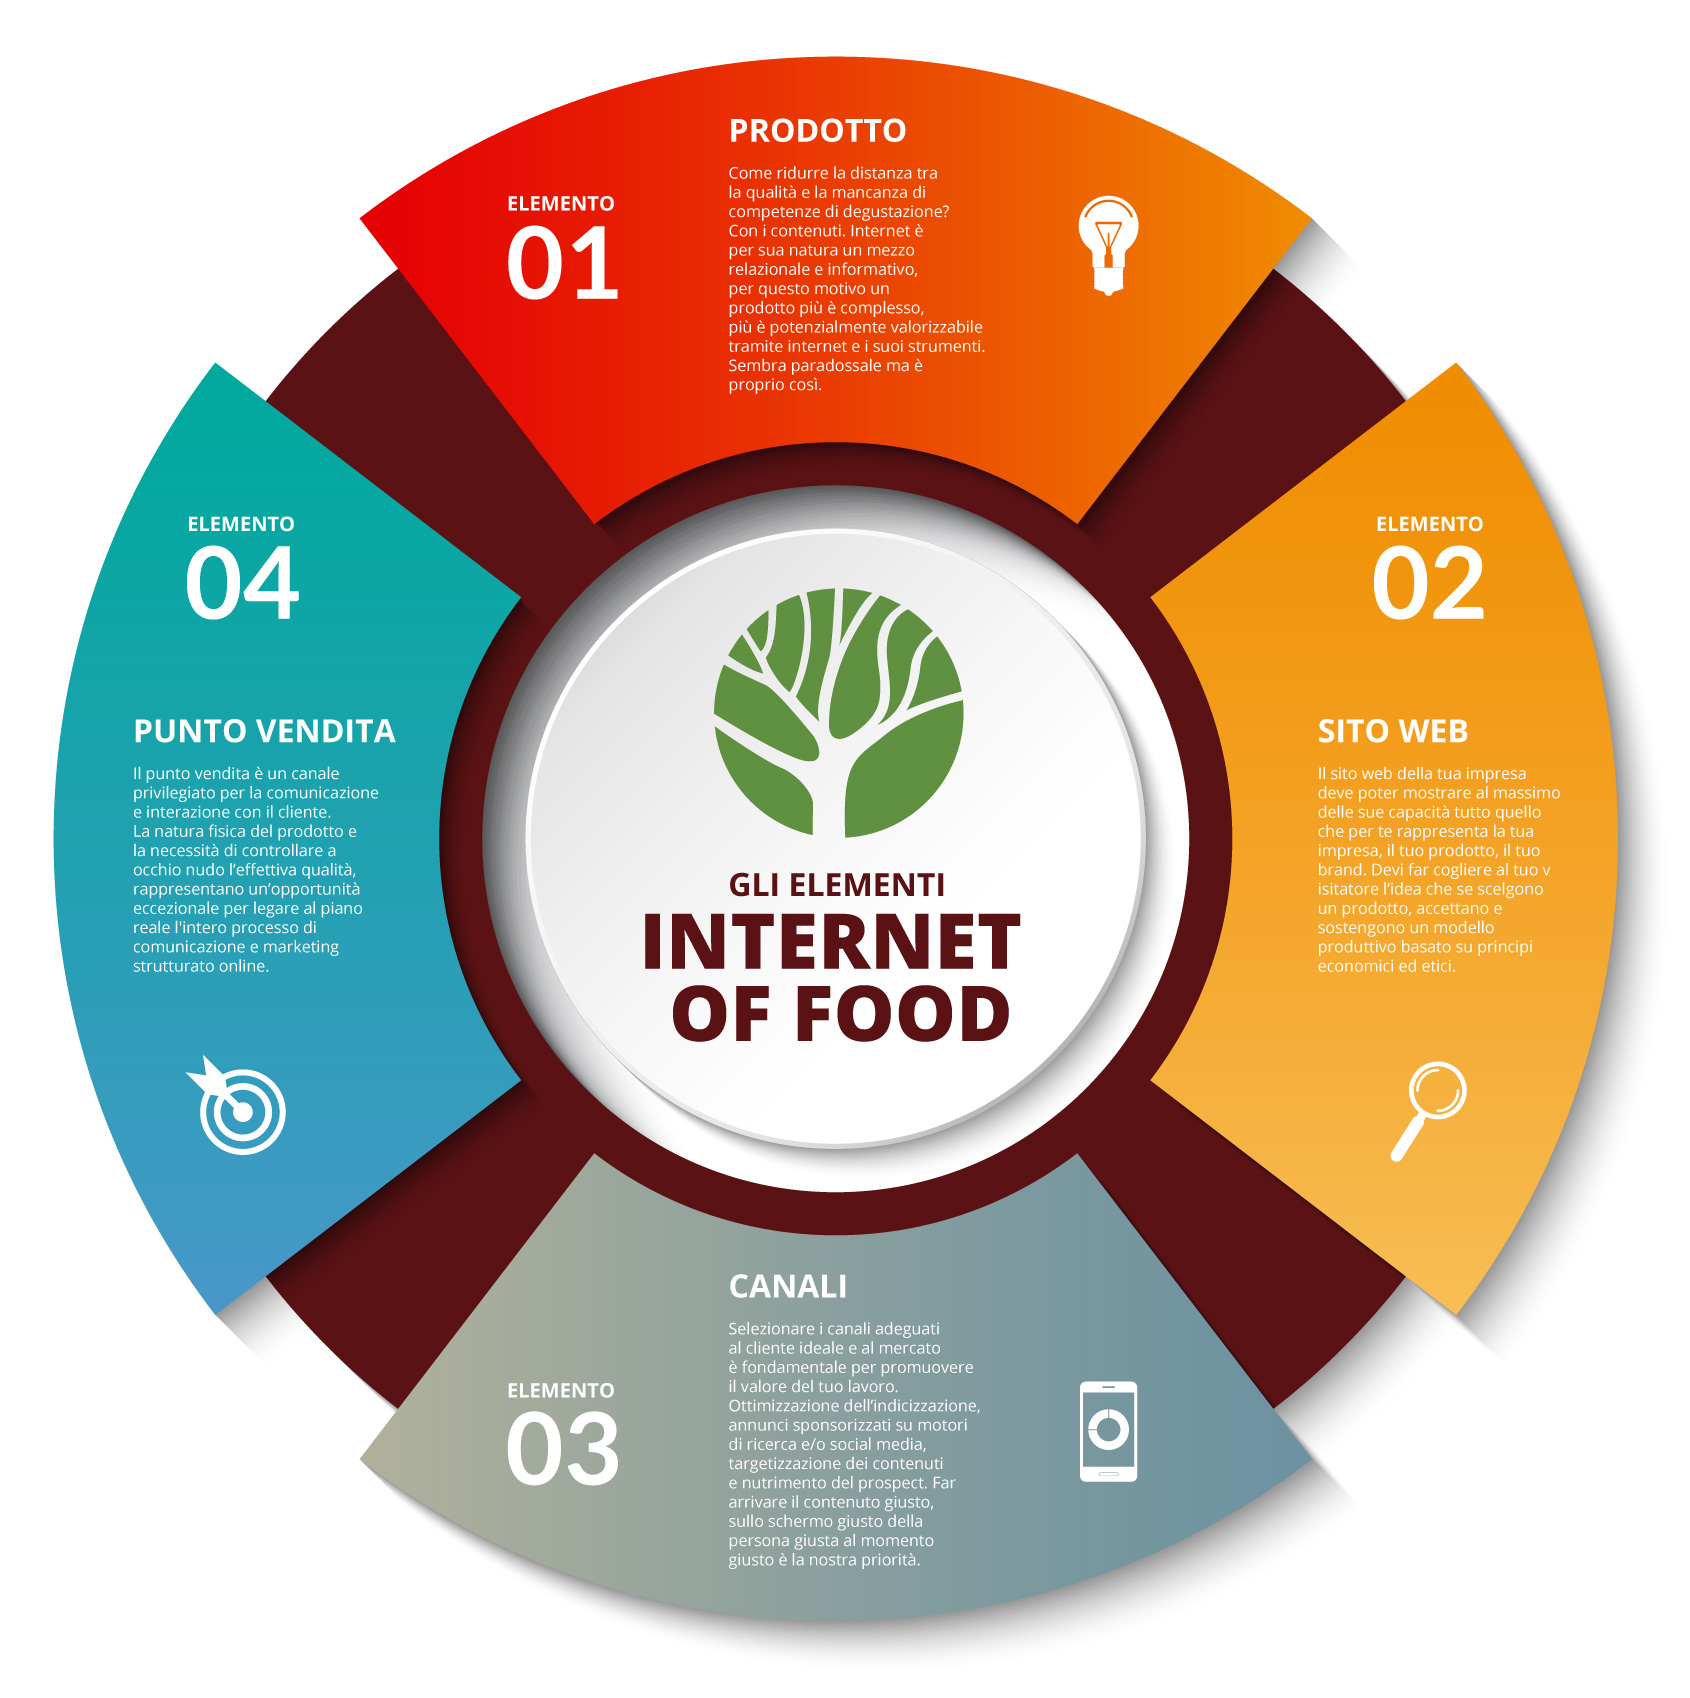 Internet of food - CRU Agency